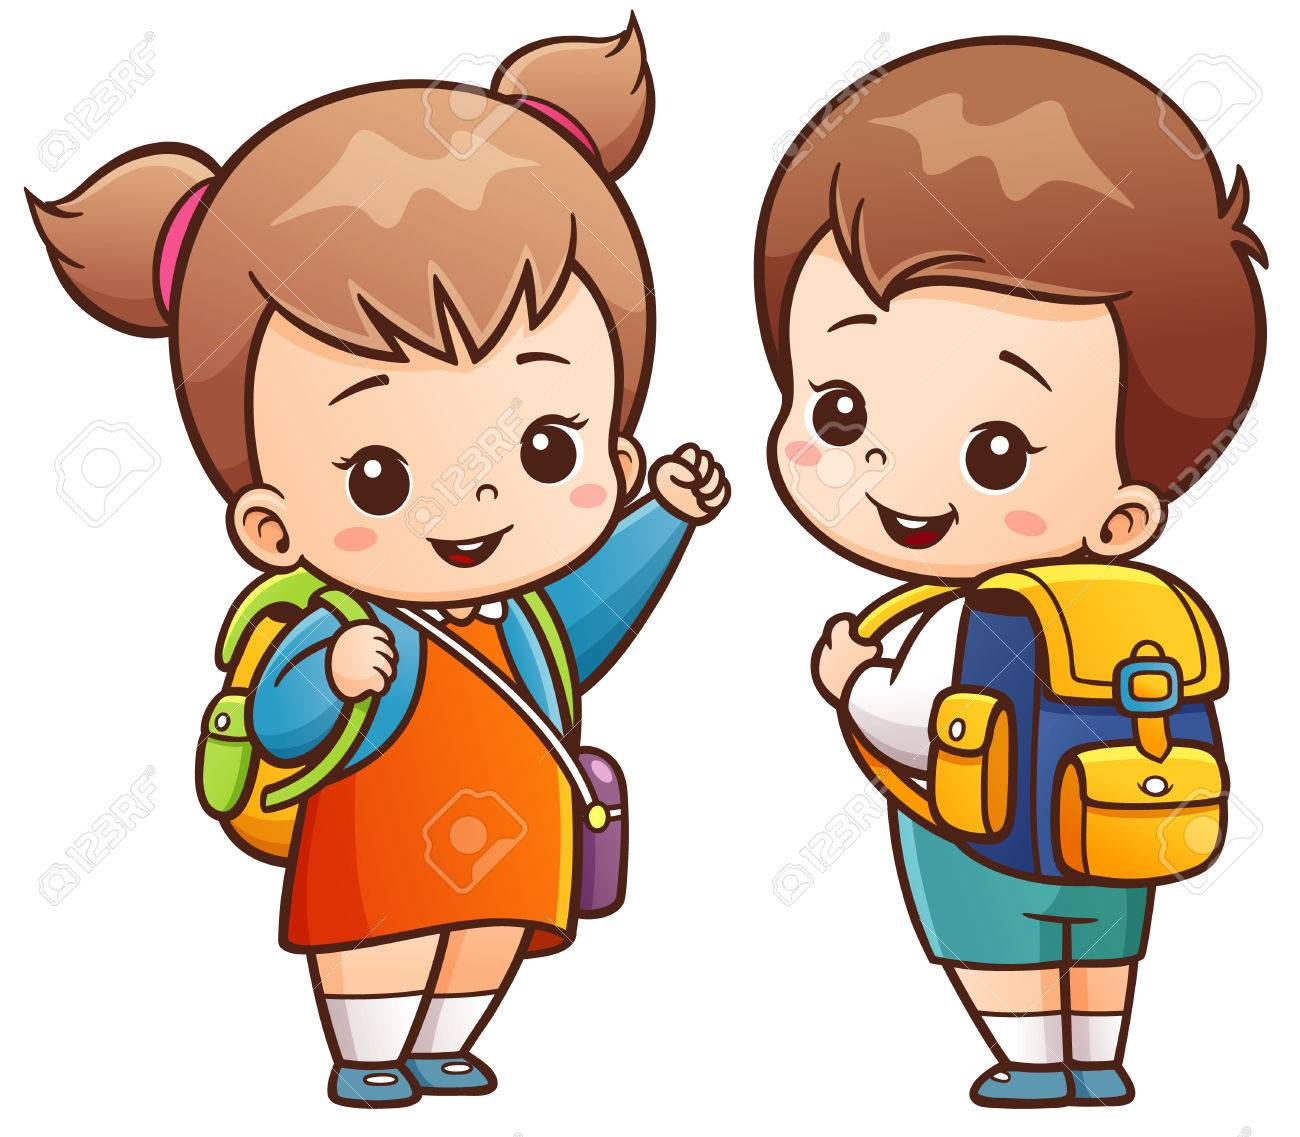 illustration of cartoon kids going to school royalty free cliparts